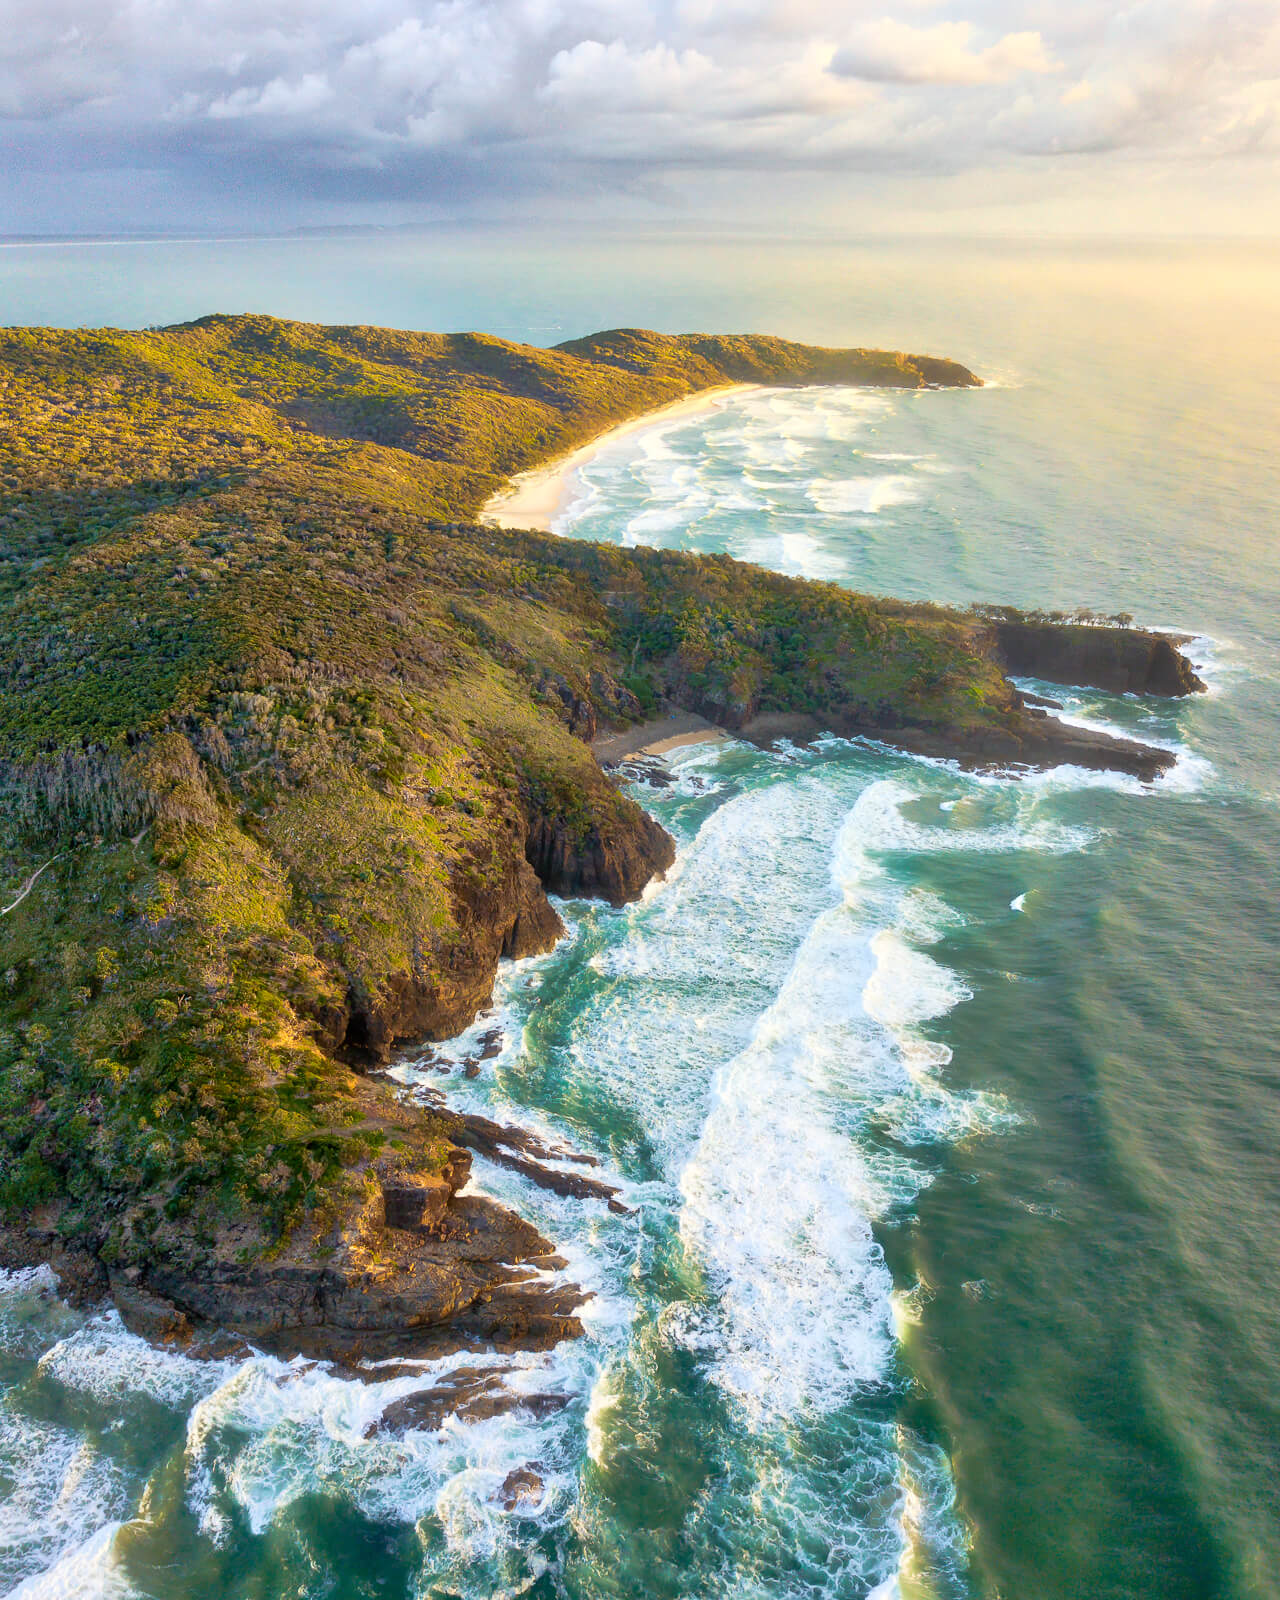 Private Home Queensland Australia: Noosa National Park Print